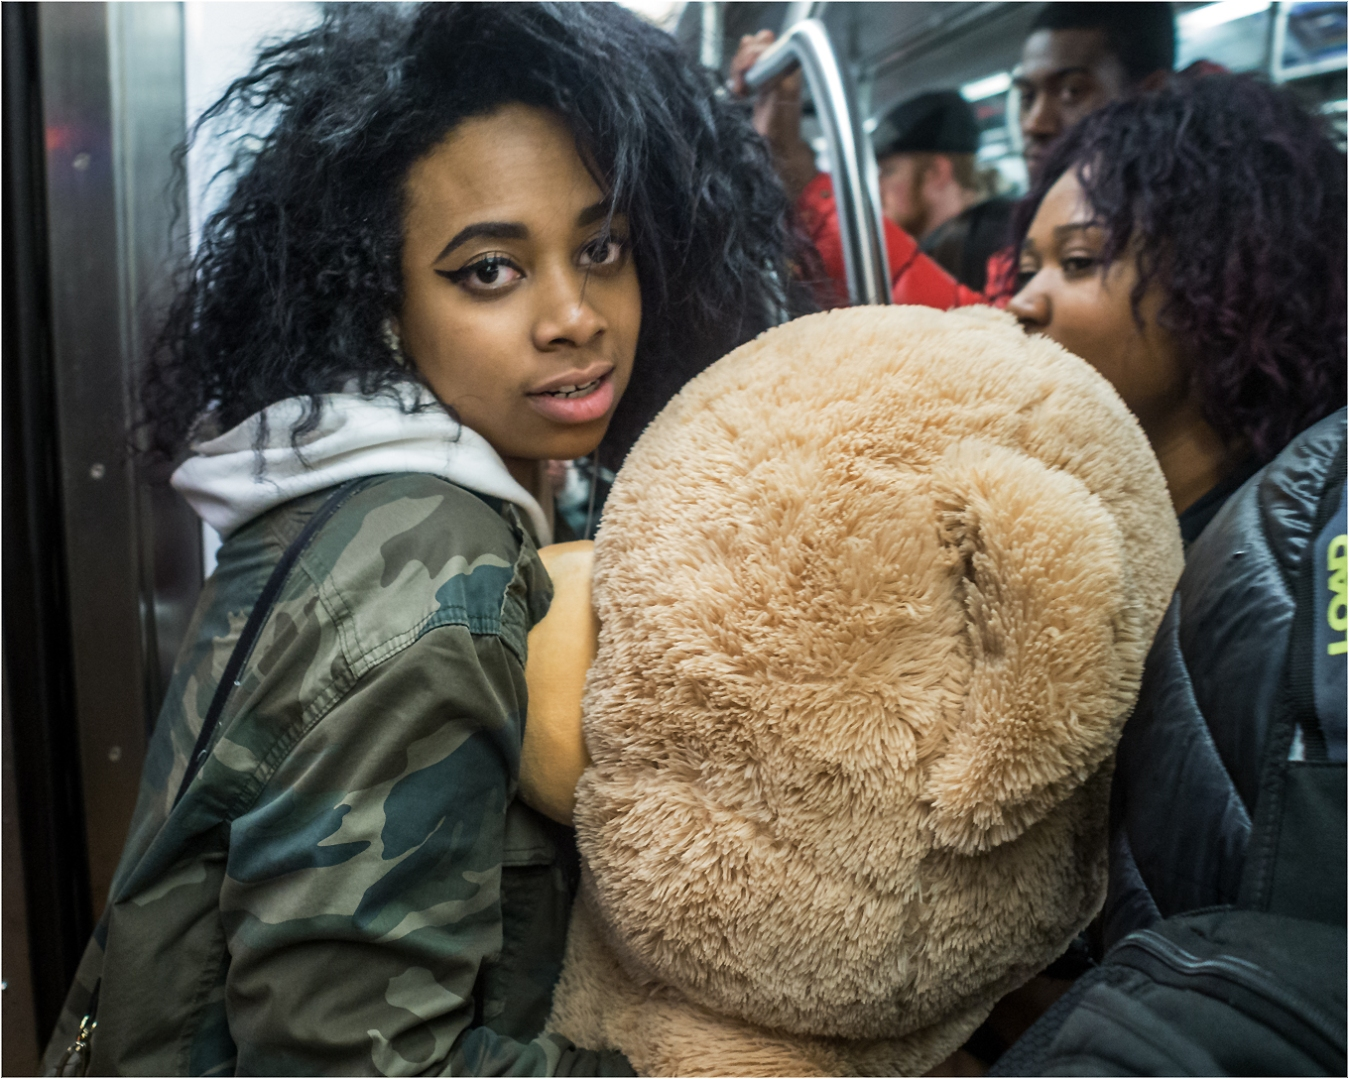 Girl-TeddyBear-2014-2 copy